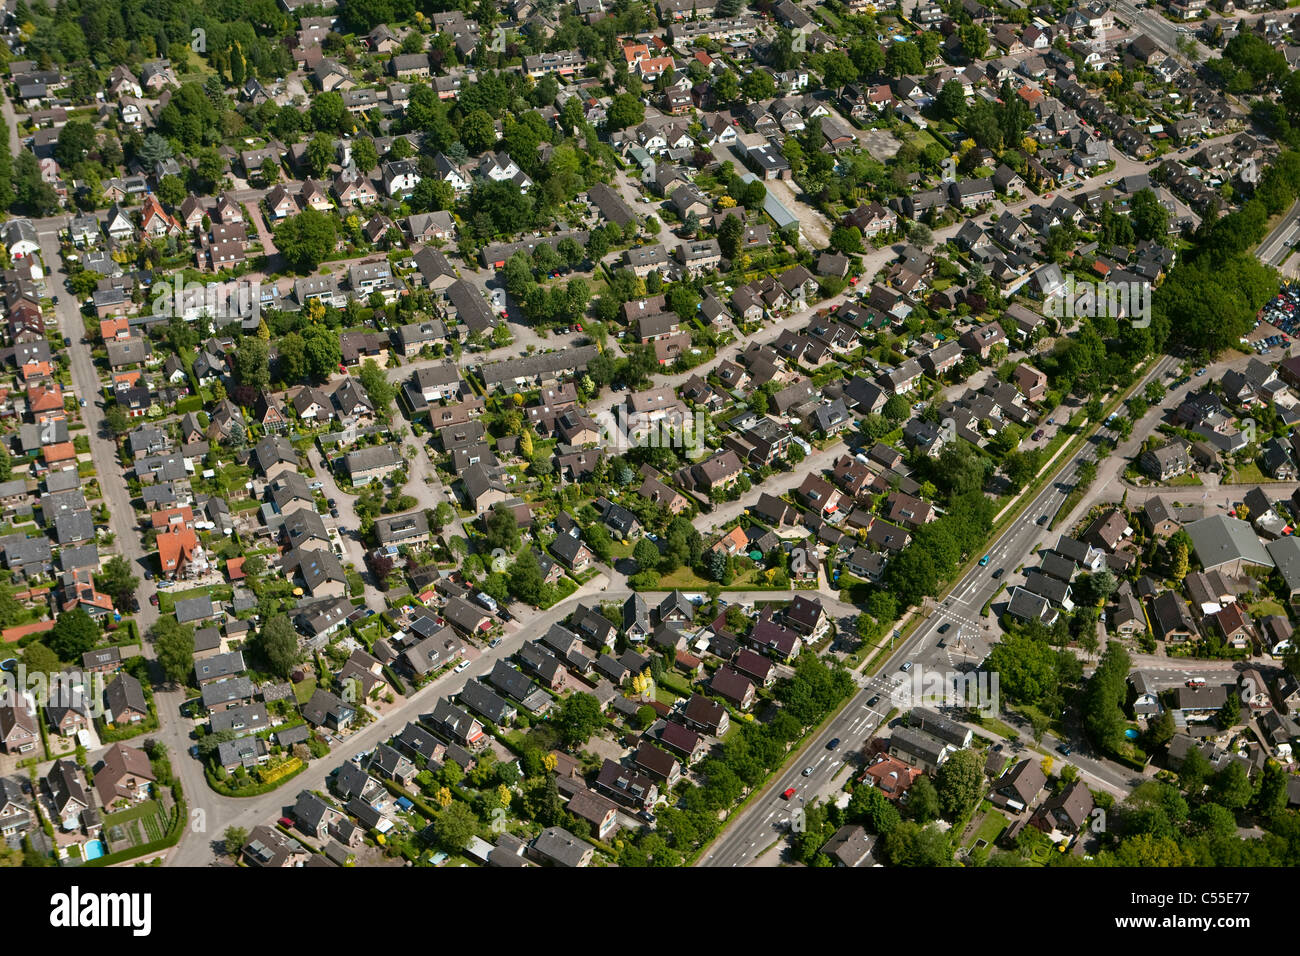 The Netherlands, Apeldoorn, residential area, aerial. - Stock Image